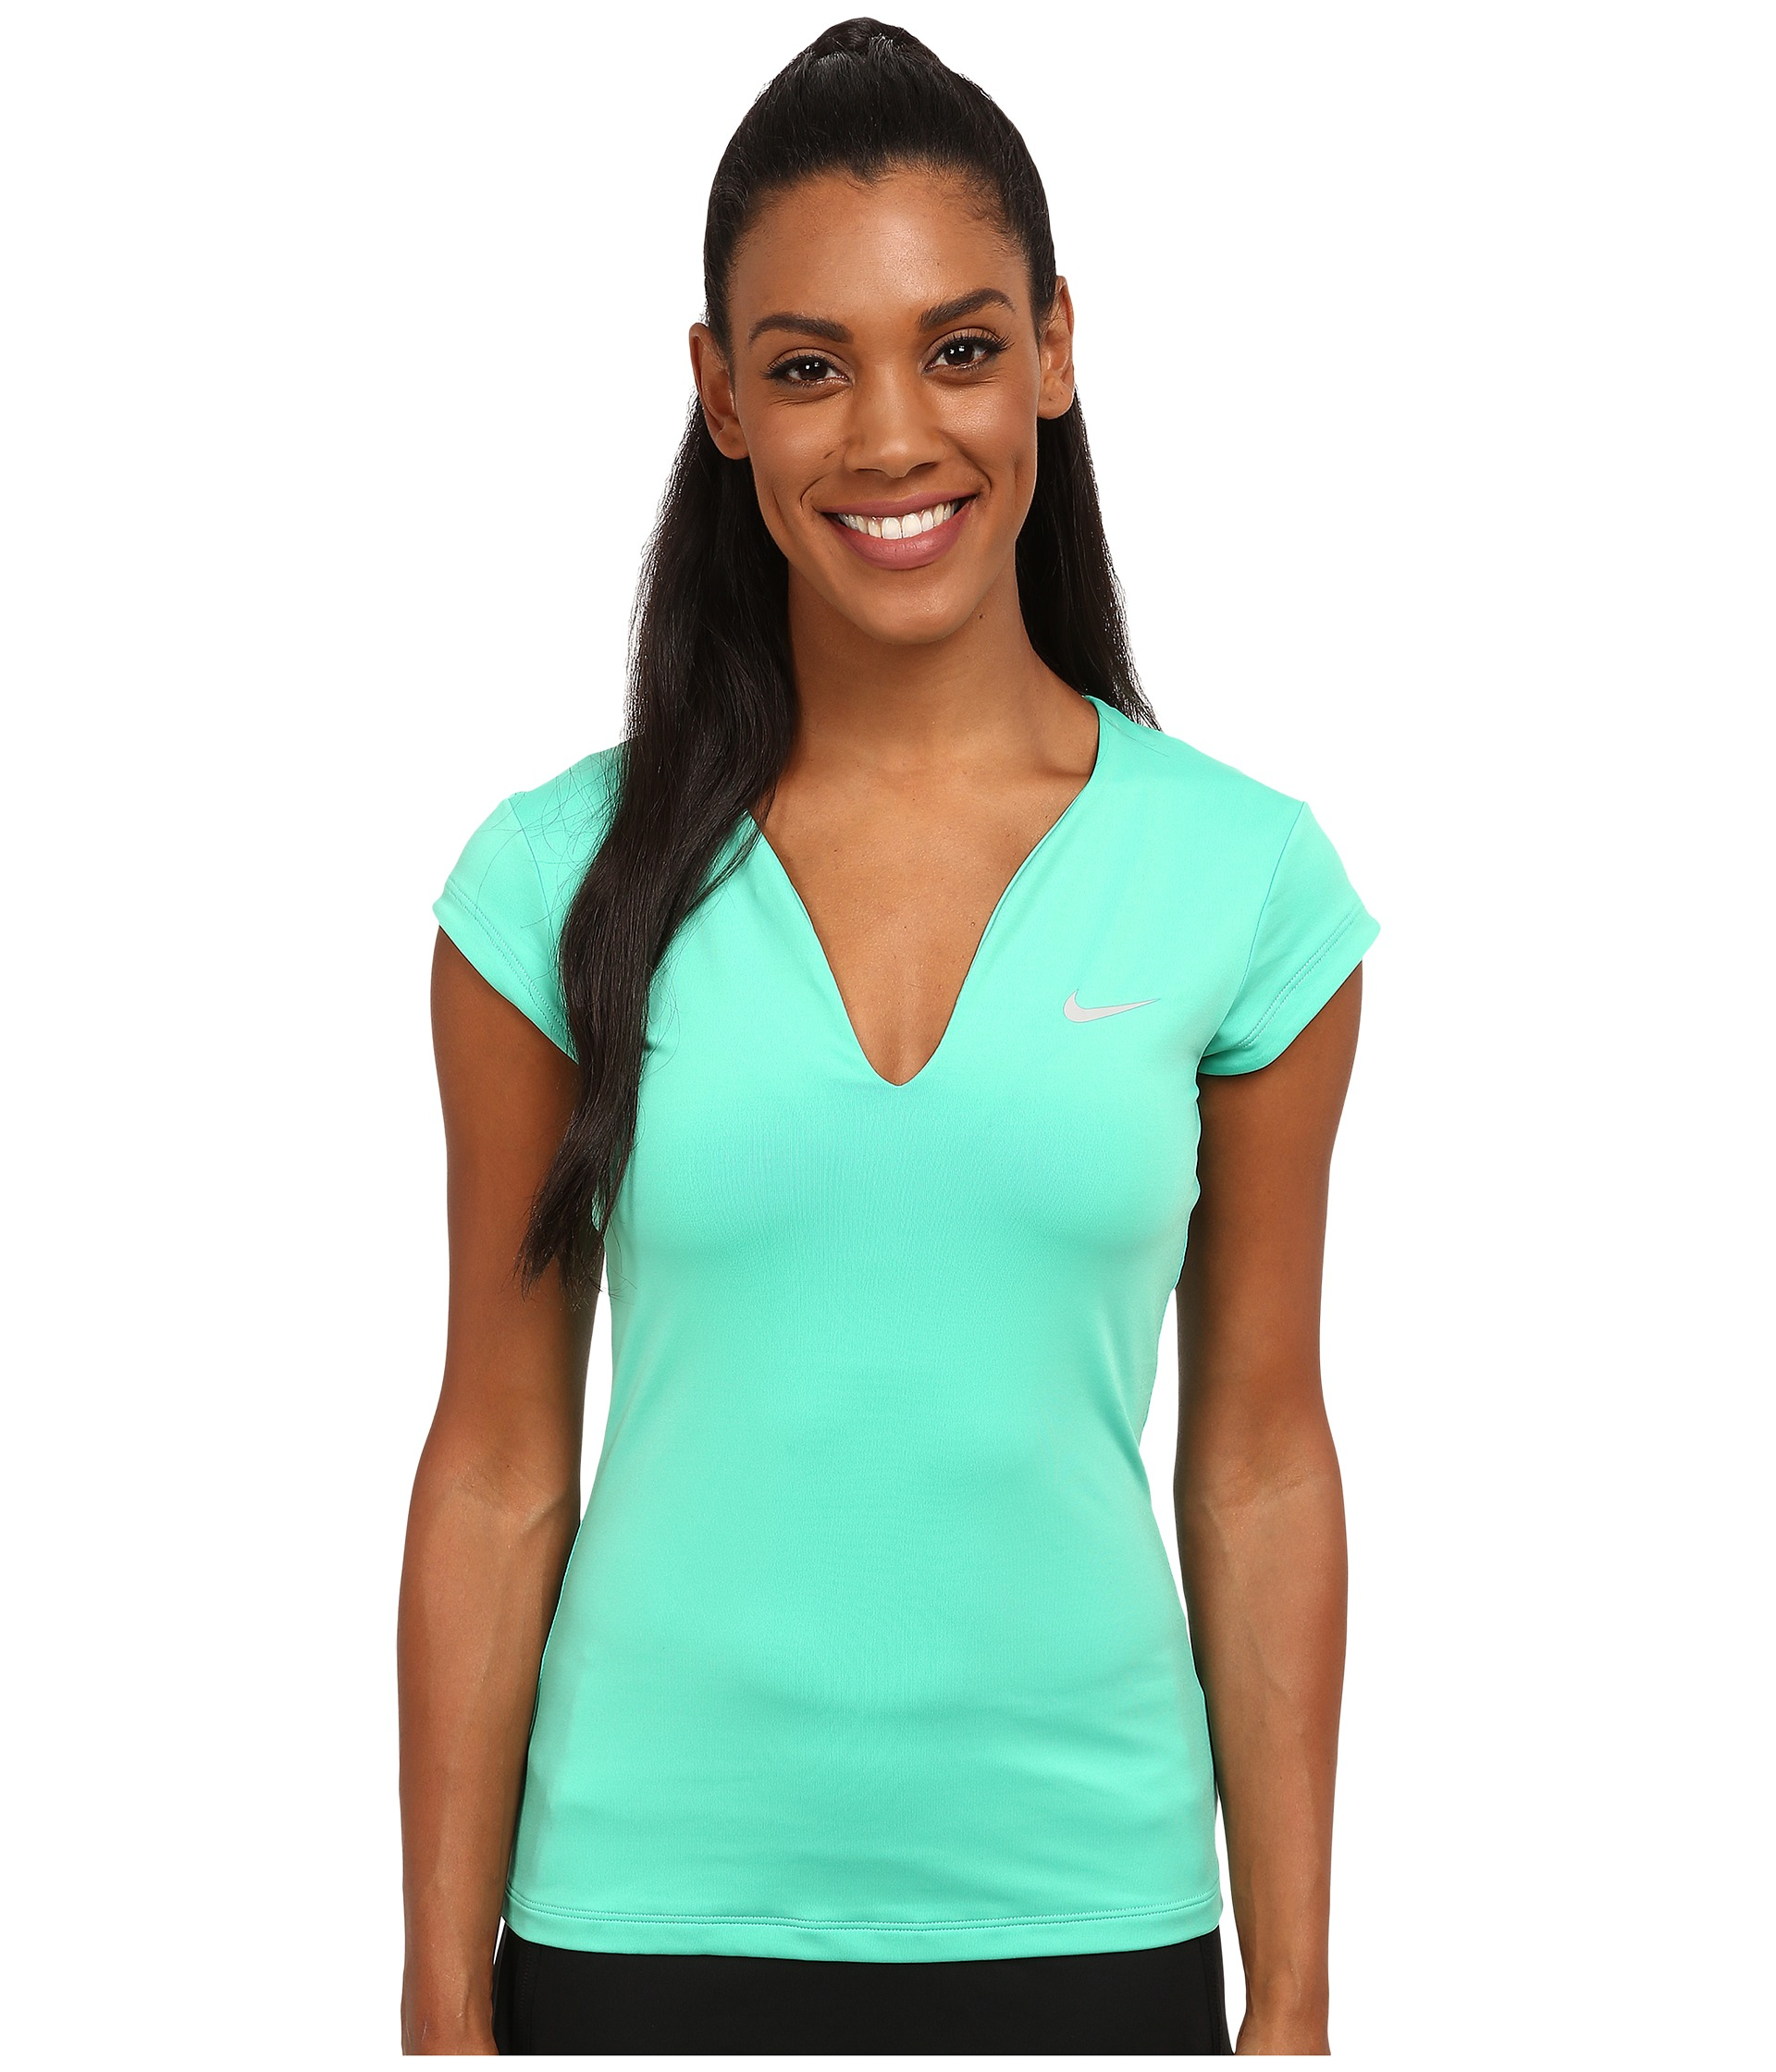 The latest women's tennis apparel is designed to help you move and feel better on the court. Pair airy tees and tanks with athletic skirts and shorts—and show the competition you've come to play.